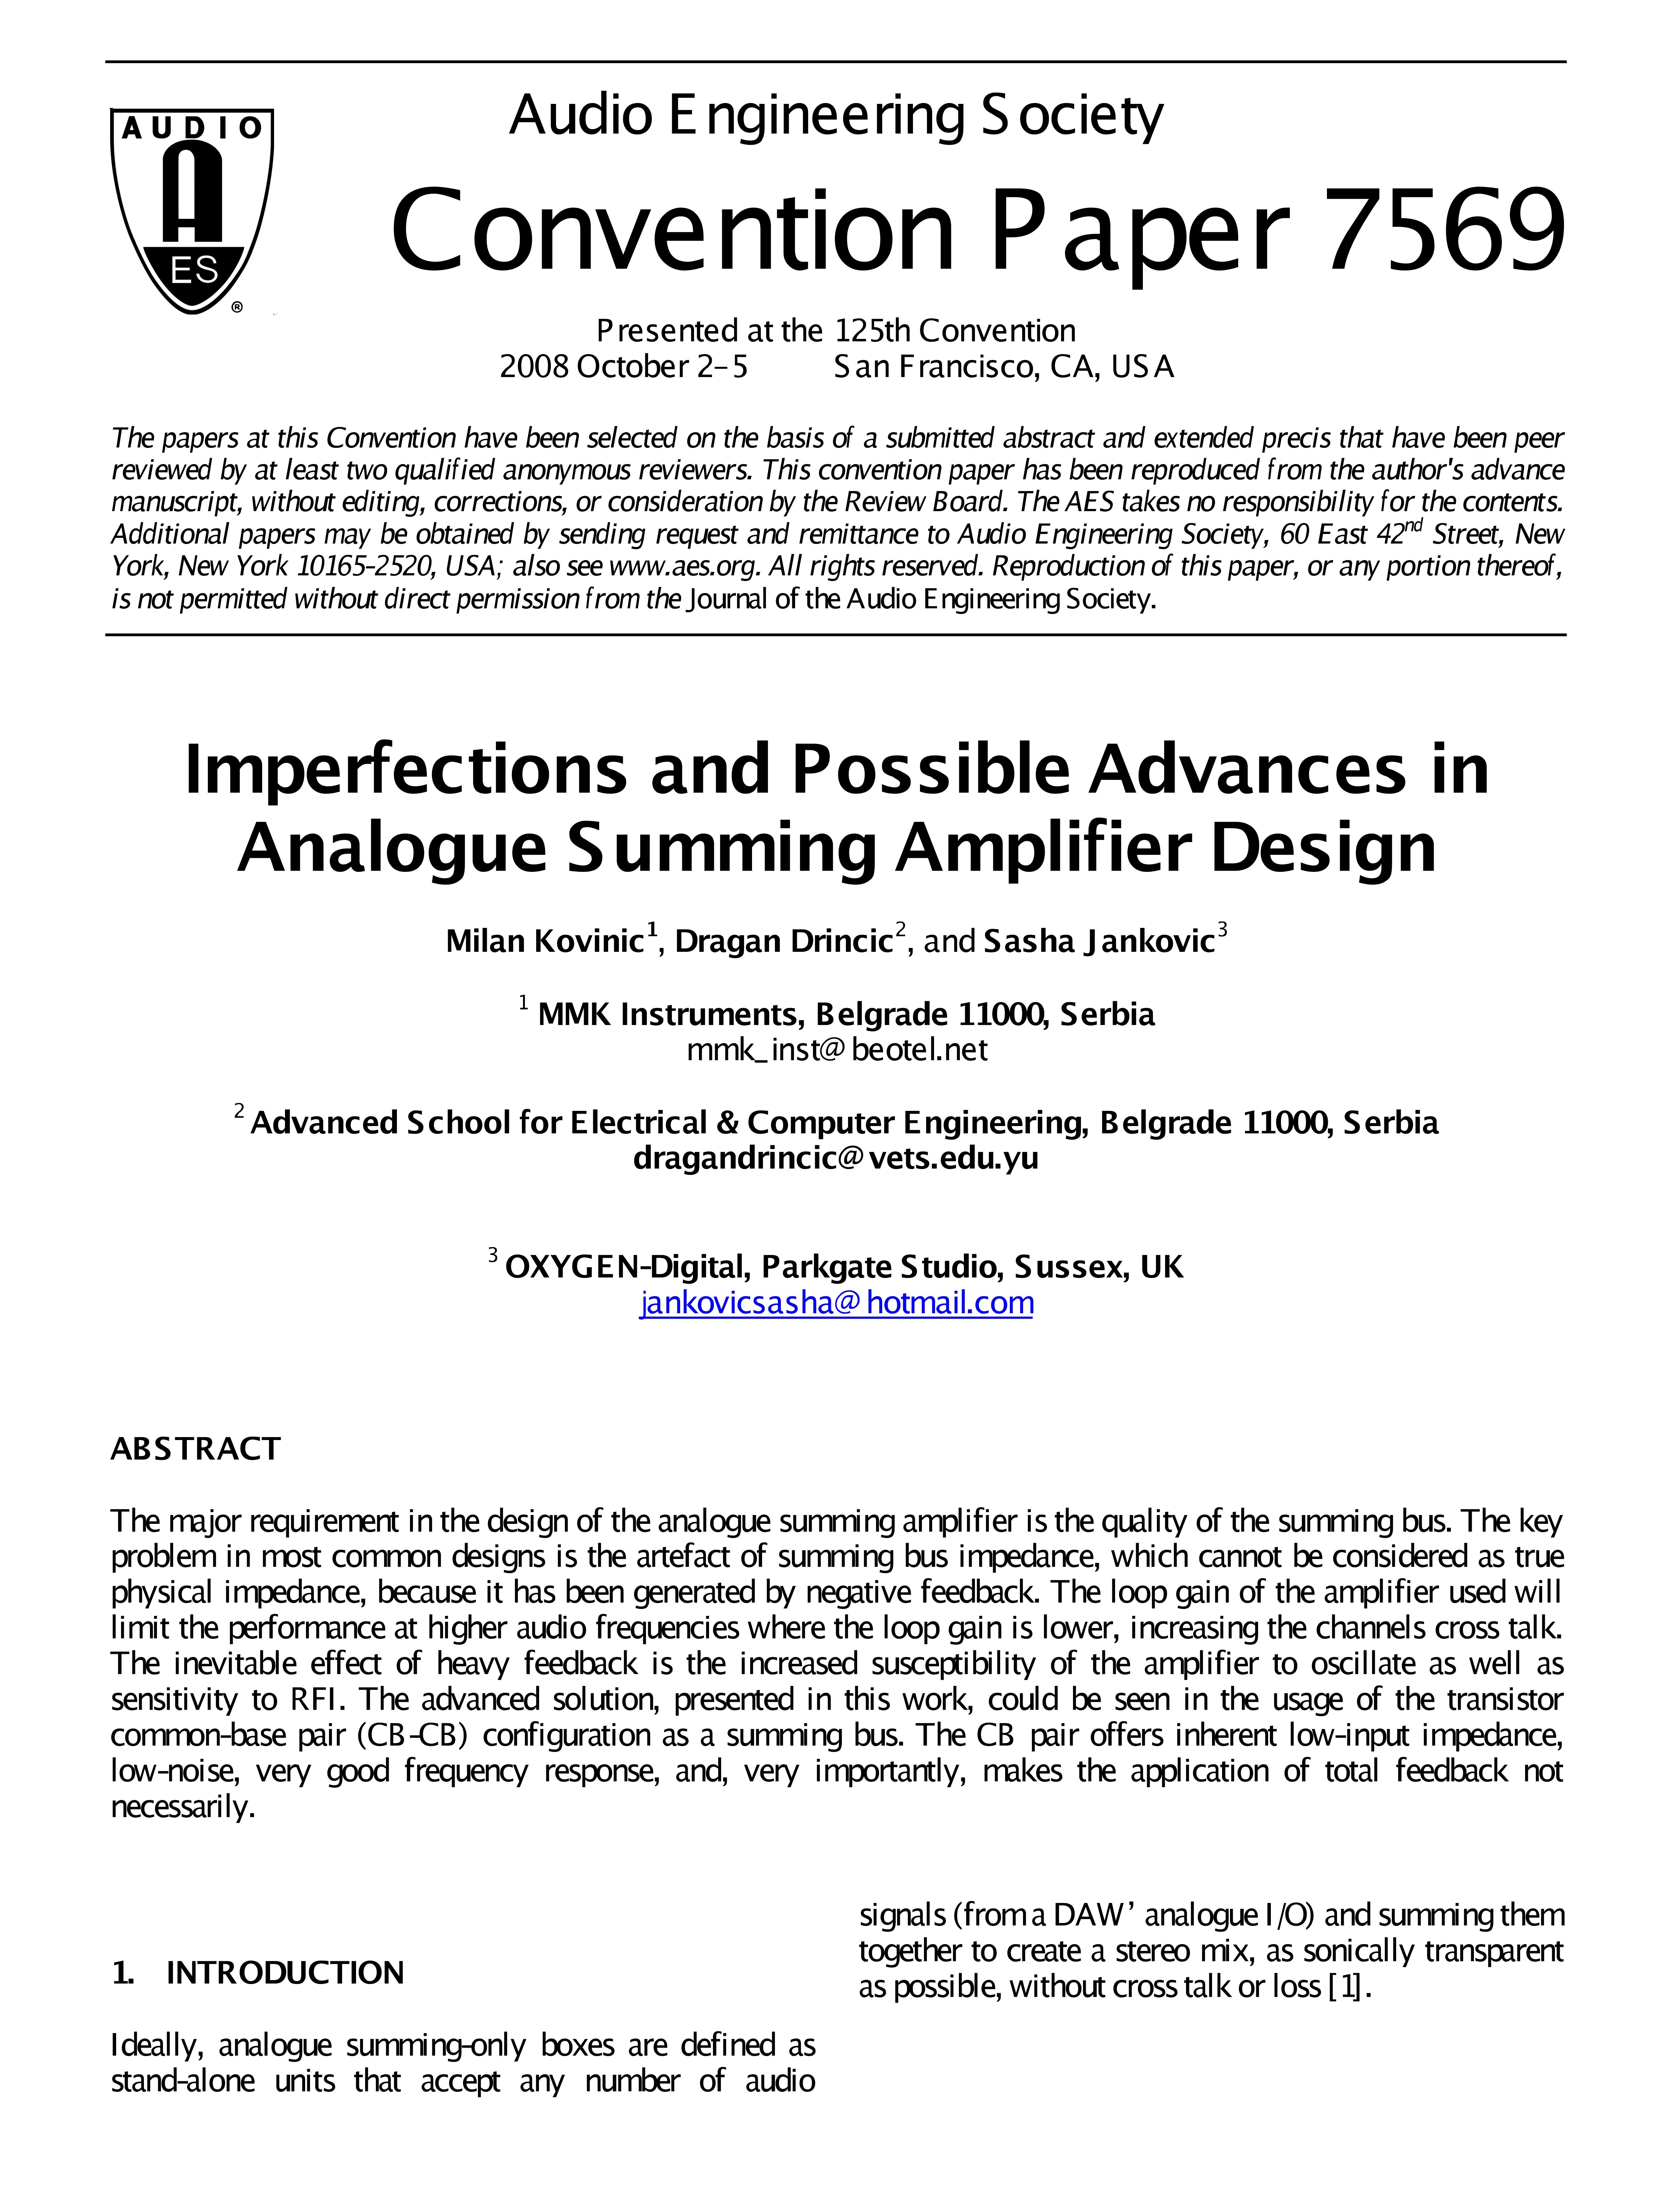 Aes E Library Imperfections And Possible Advances In Analog Operational Amplifiers Summing Amplifier Design